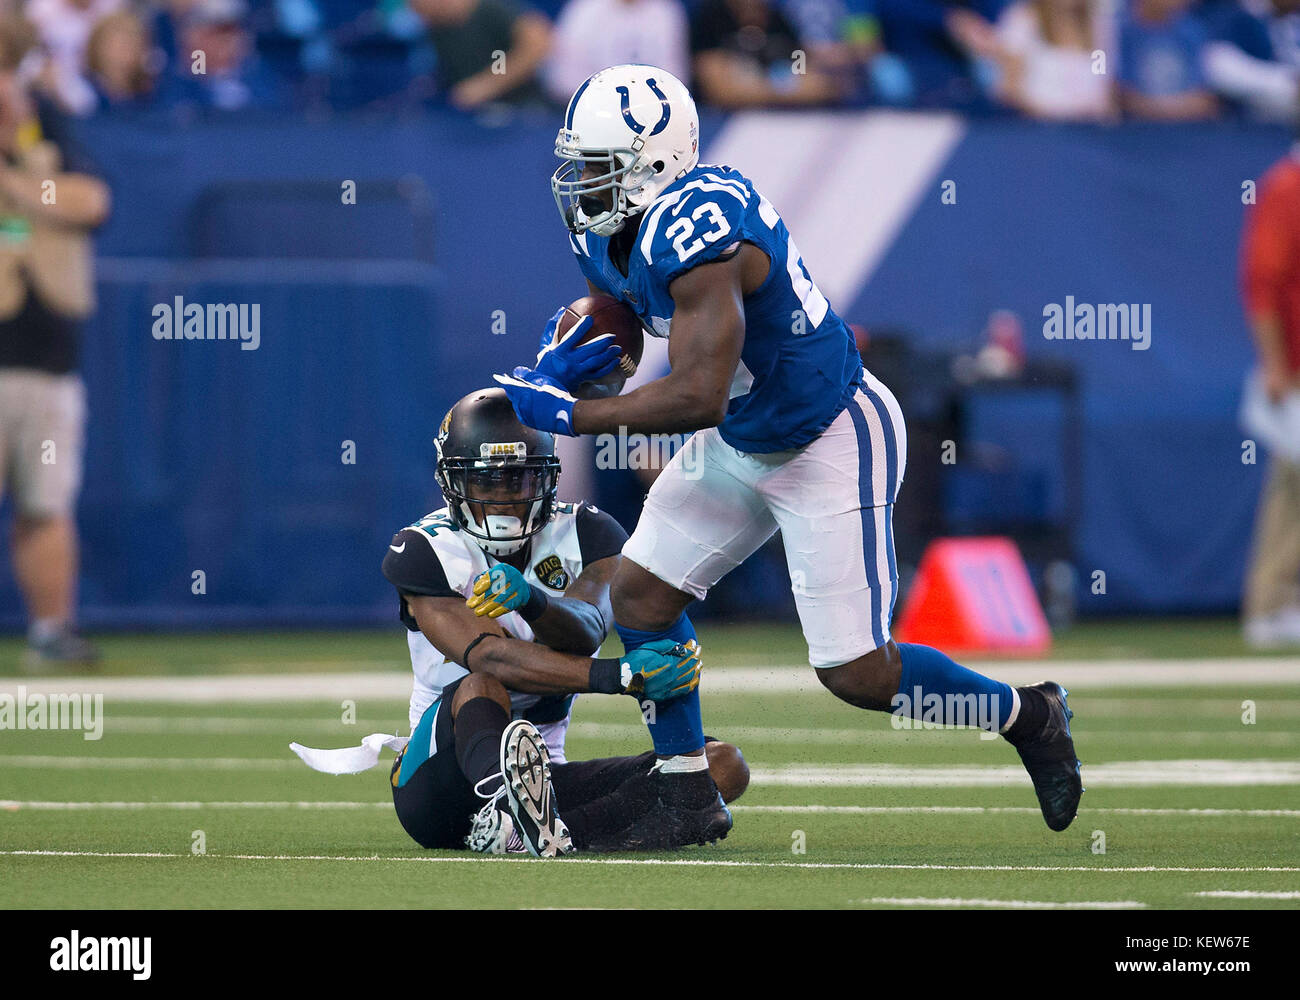 October 22, 2017: Indianapolis Colts running back Frank Gore (23) runs with the ball as Jacksonville Jaguars defensive - Stock Image